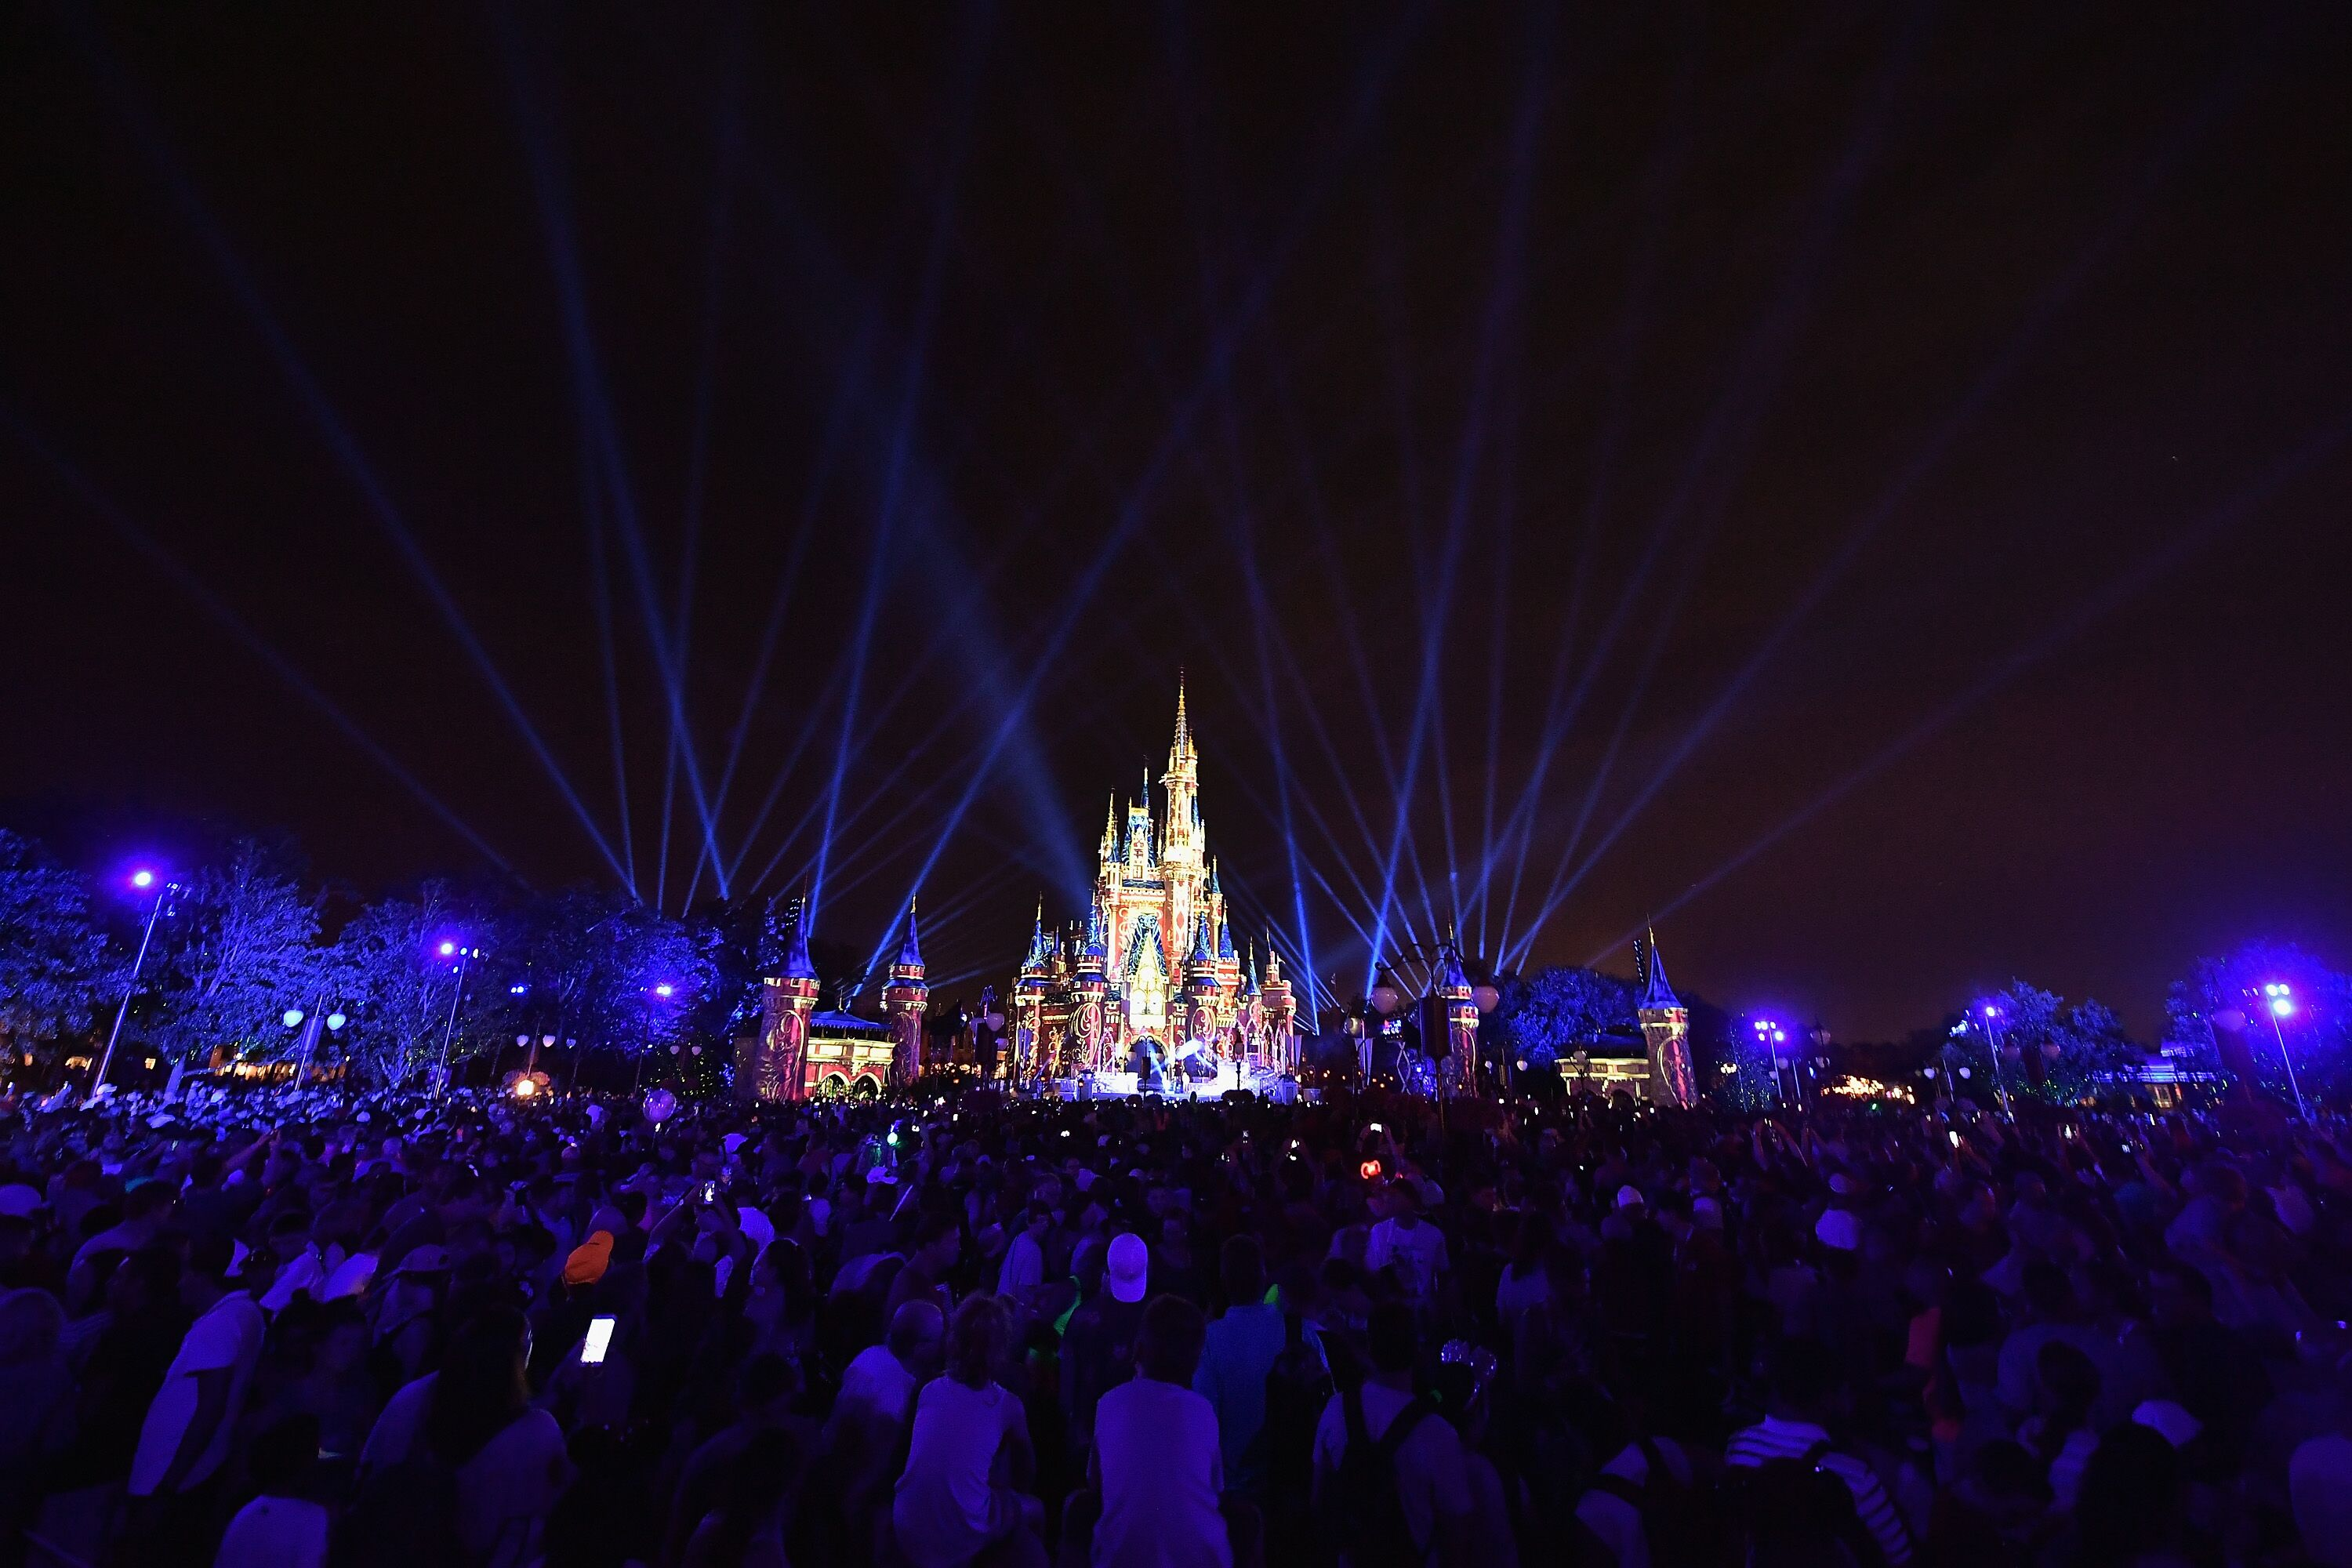 Disney World tickets don't go on sale often, but they are right now